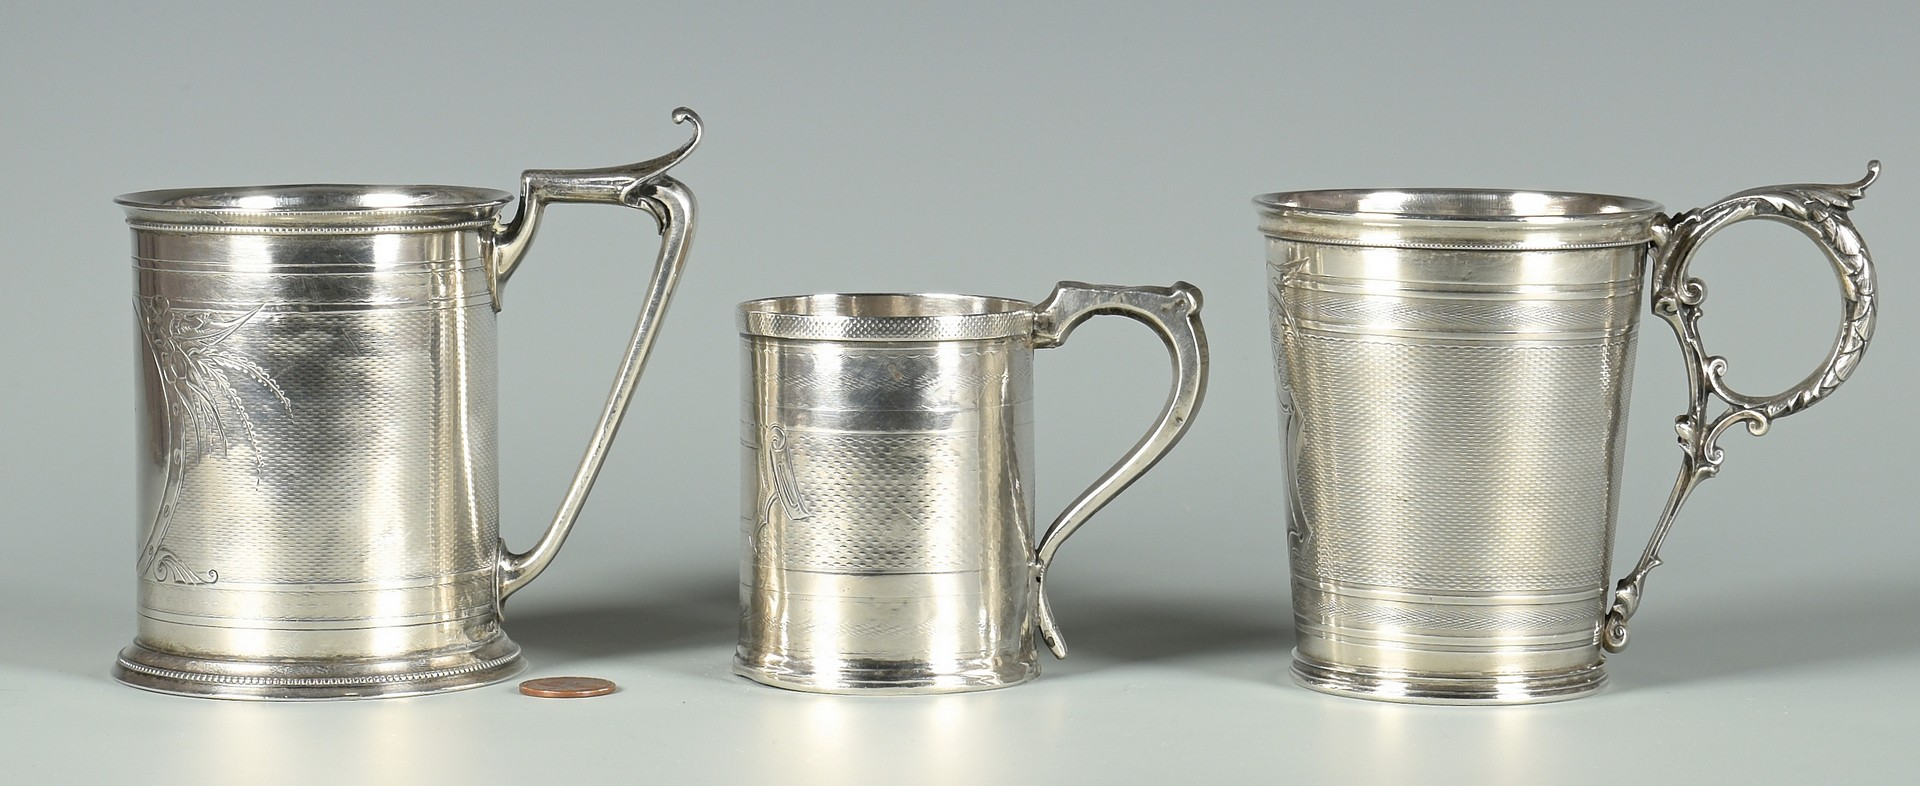 Lot 61: 3 Coin Silver Mugs